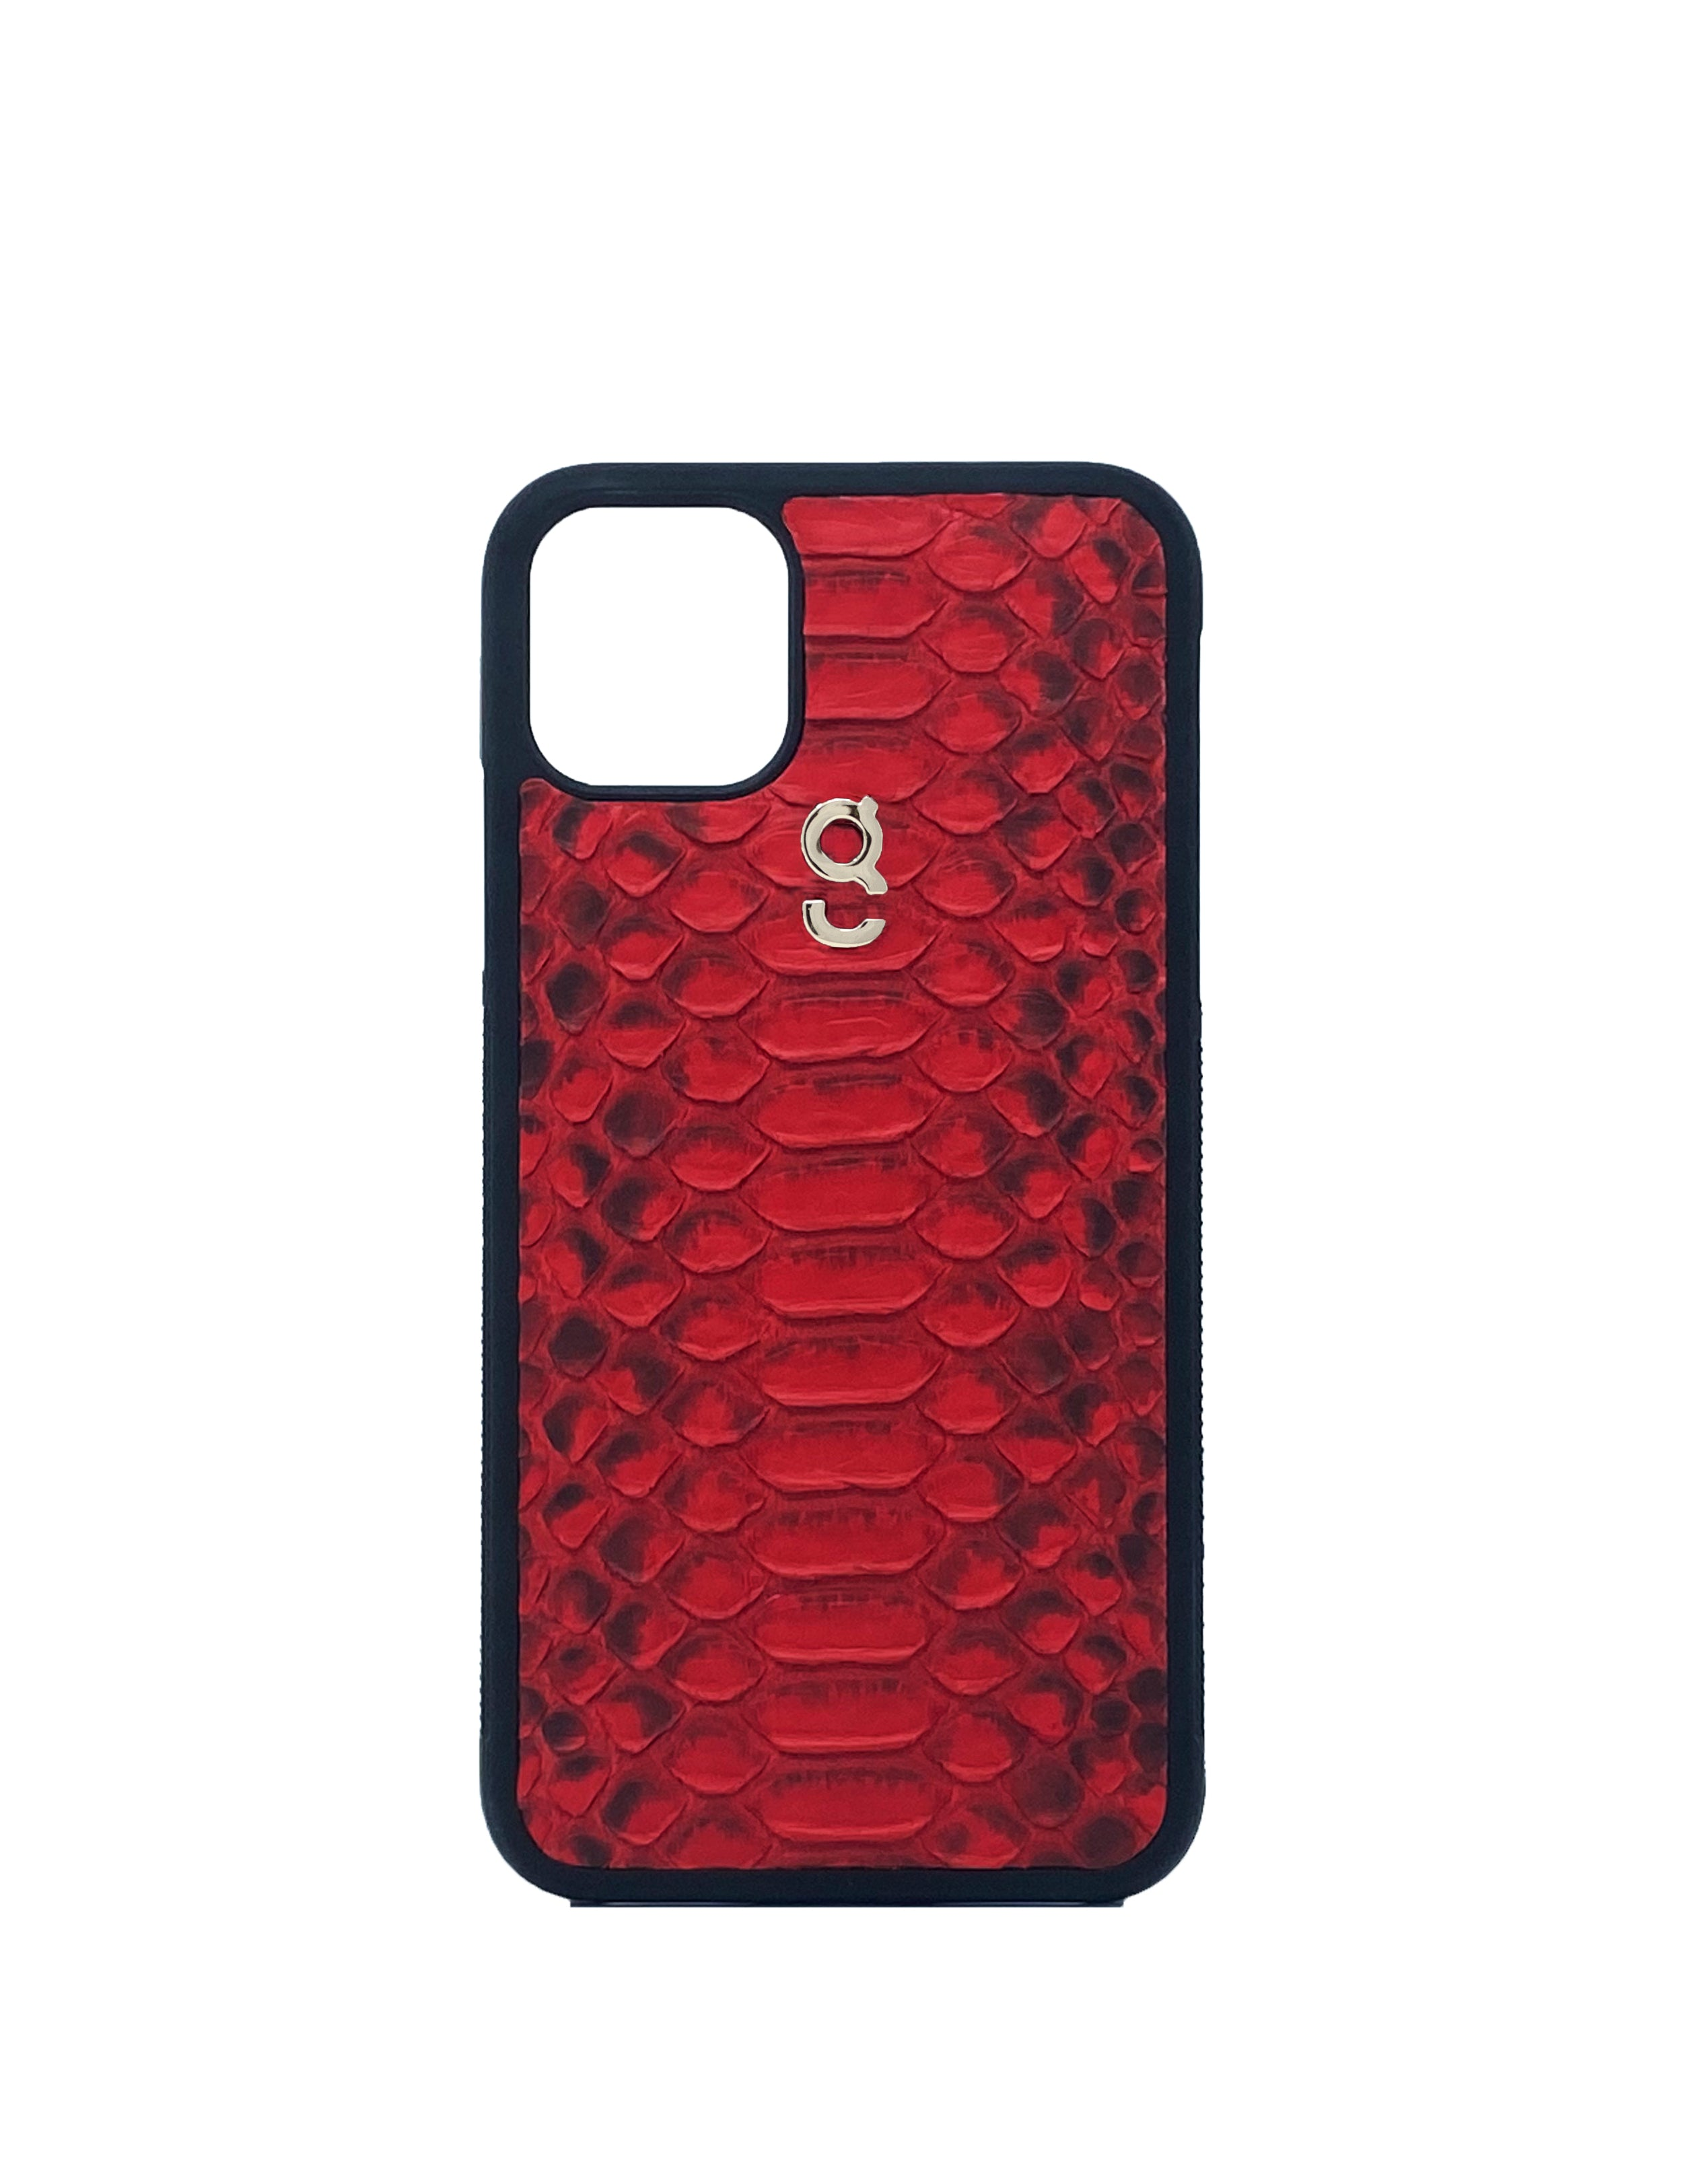 Red warm up  - iPhone 11 / 11 Pro / 11 Pro Max case - gcoulee